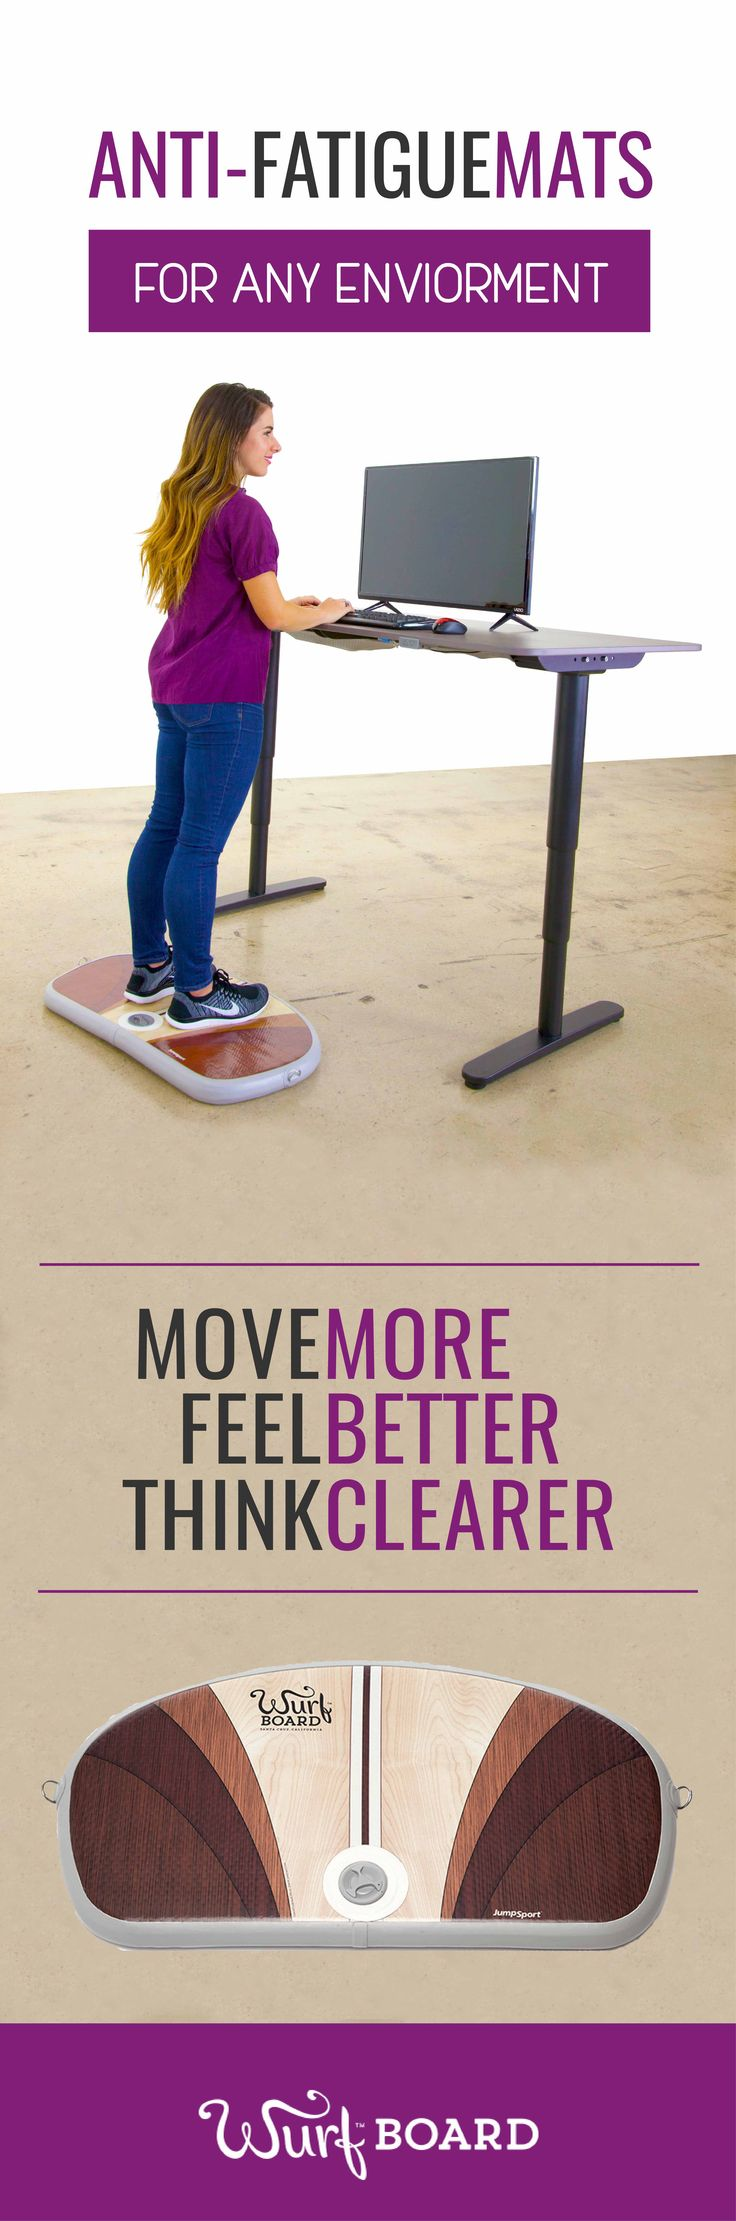 burn calories at work with the wurf board anti fatigue mat for standing desks wurf bedroompicturesque comfortable desk chairs enjoy work